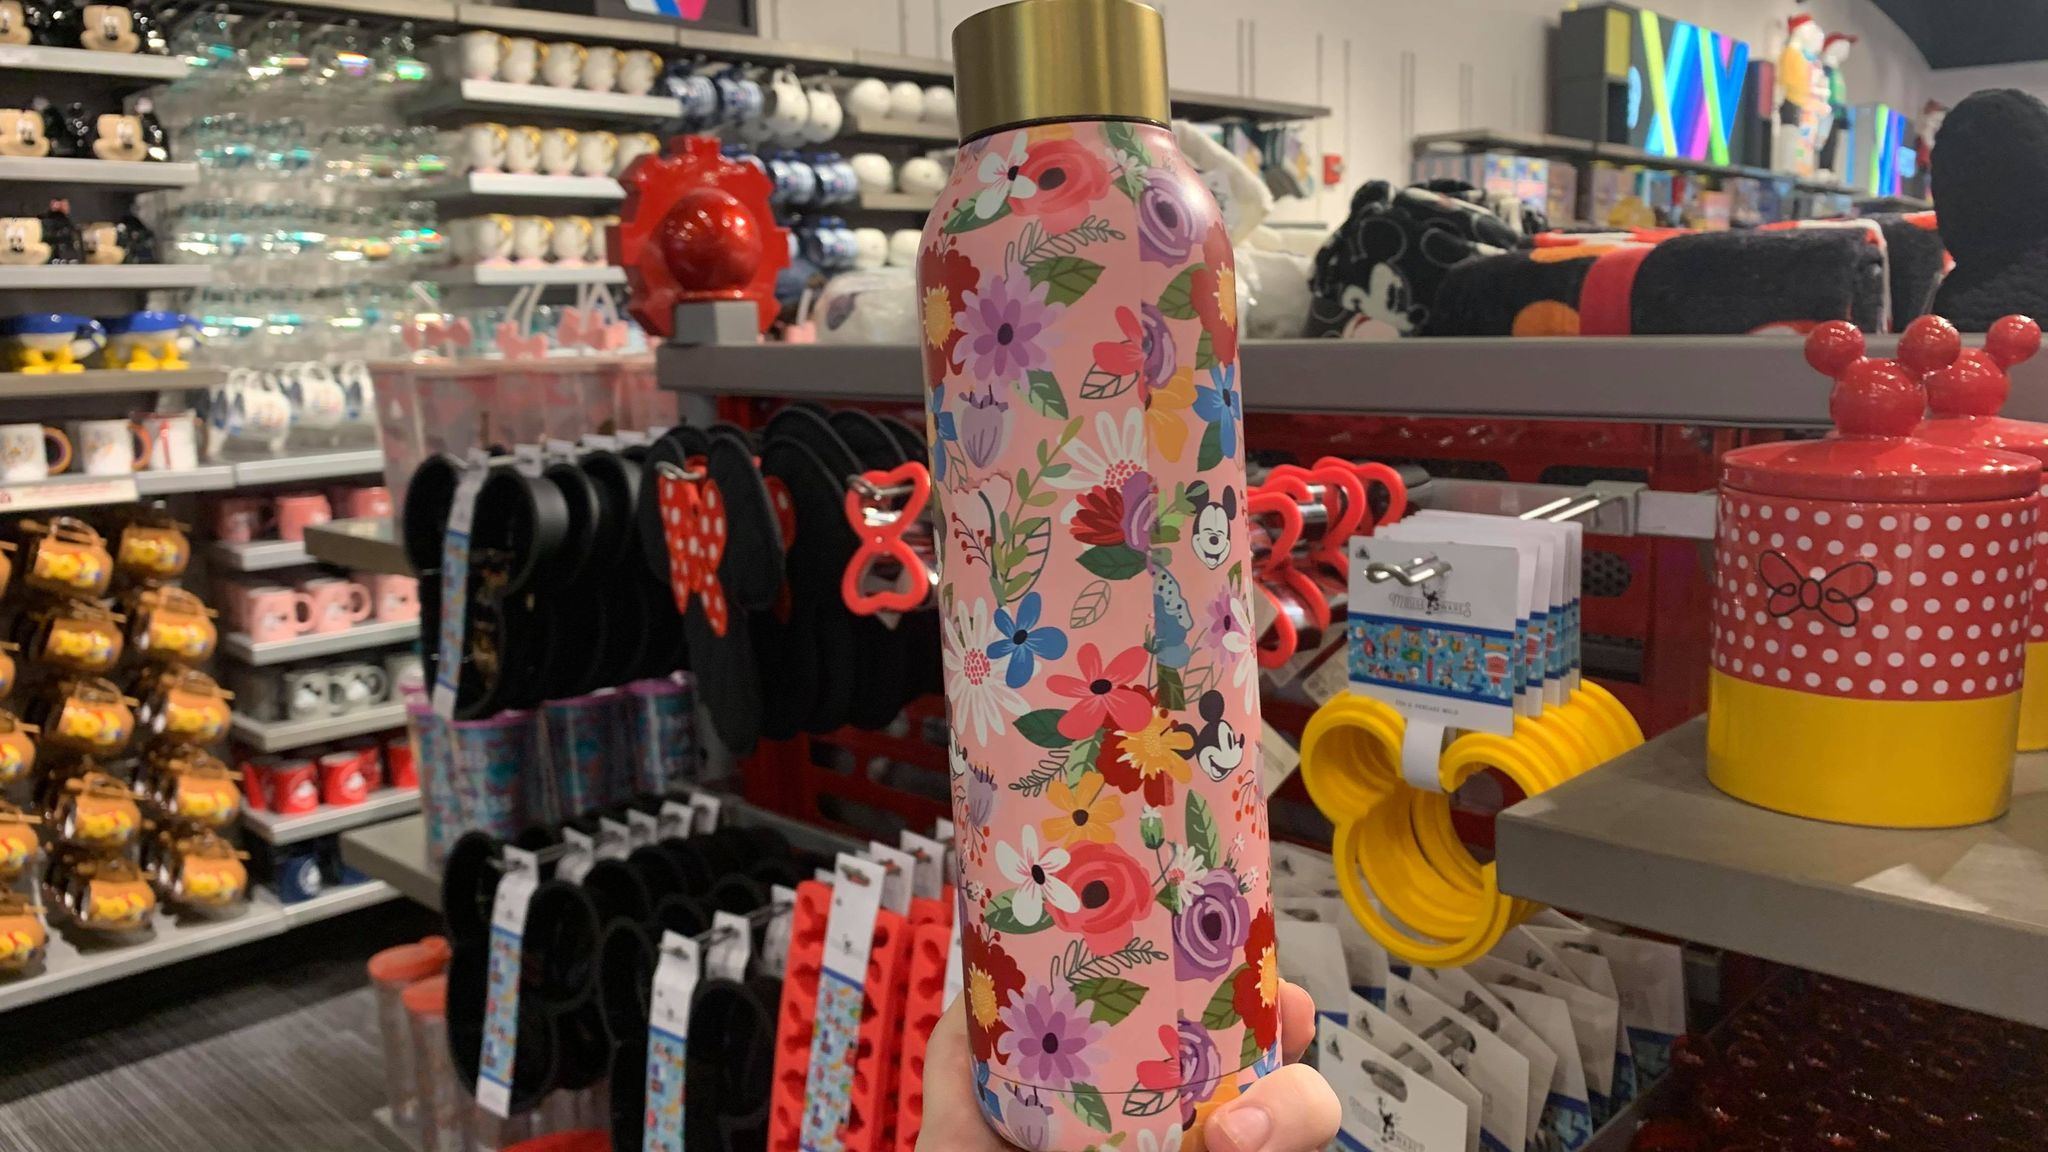 Super Cute 'You Had Me at Walt Disney World' Water Bottle Spotted at Disney World 3